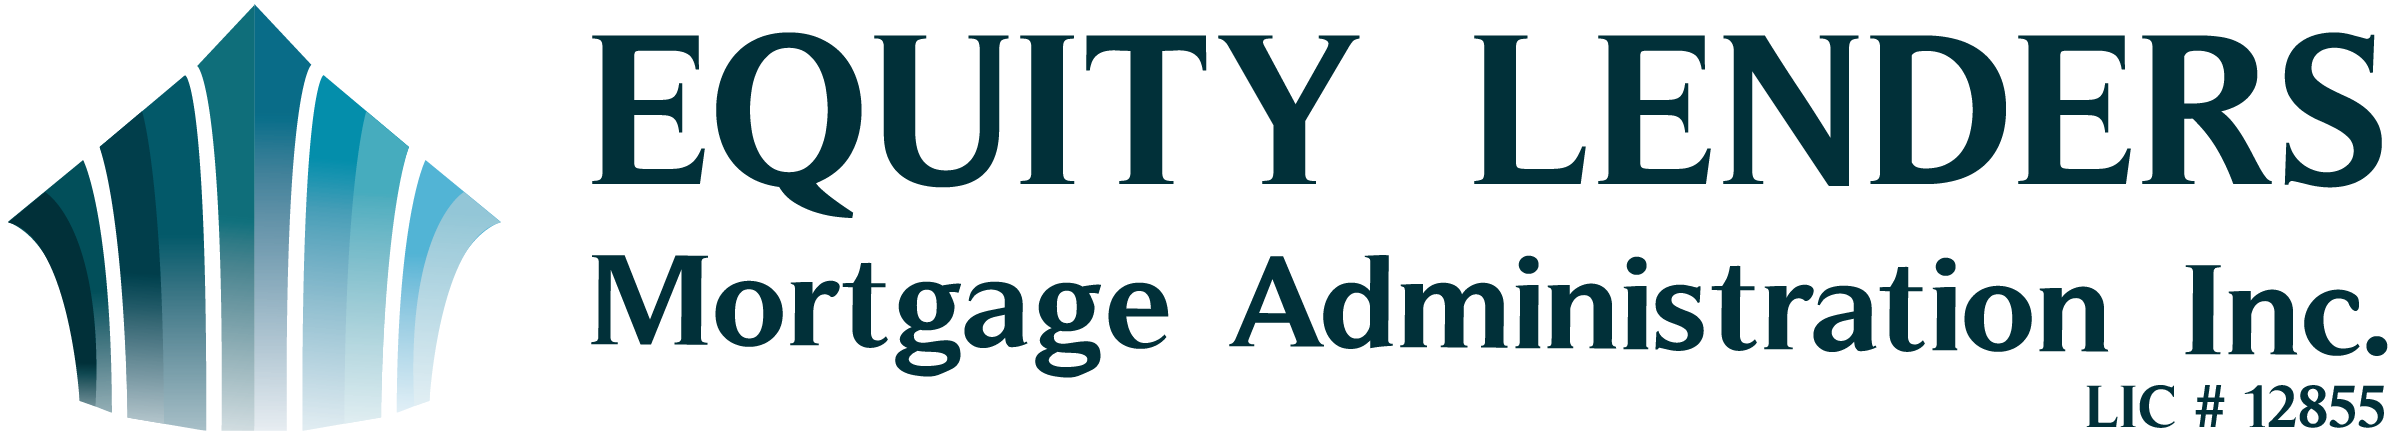 Equity Lenders Mortgage Administration